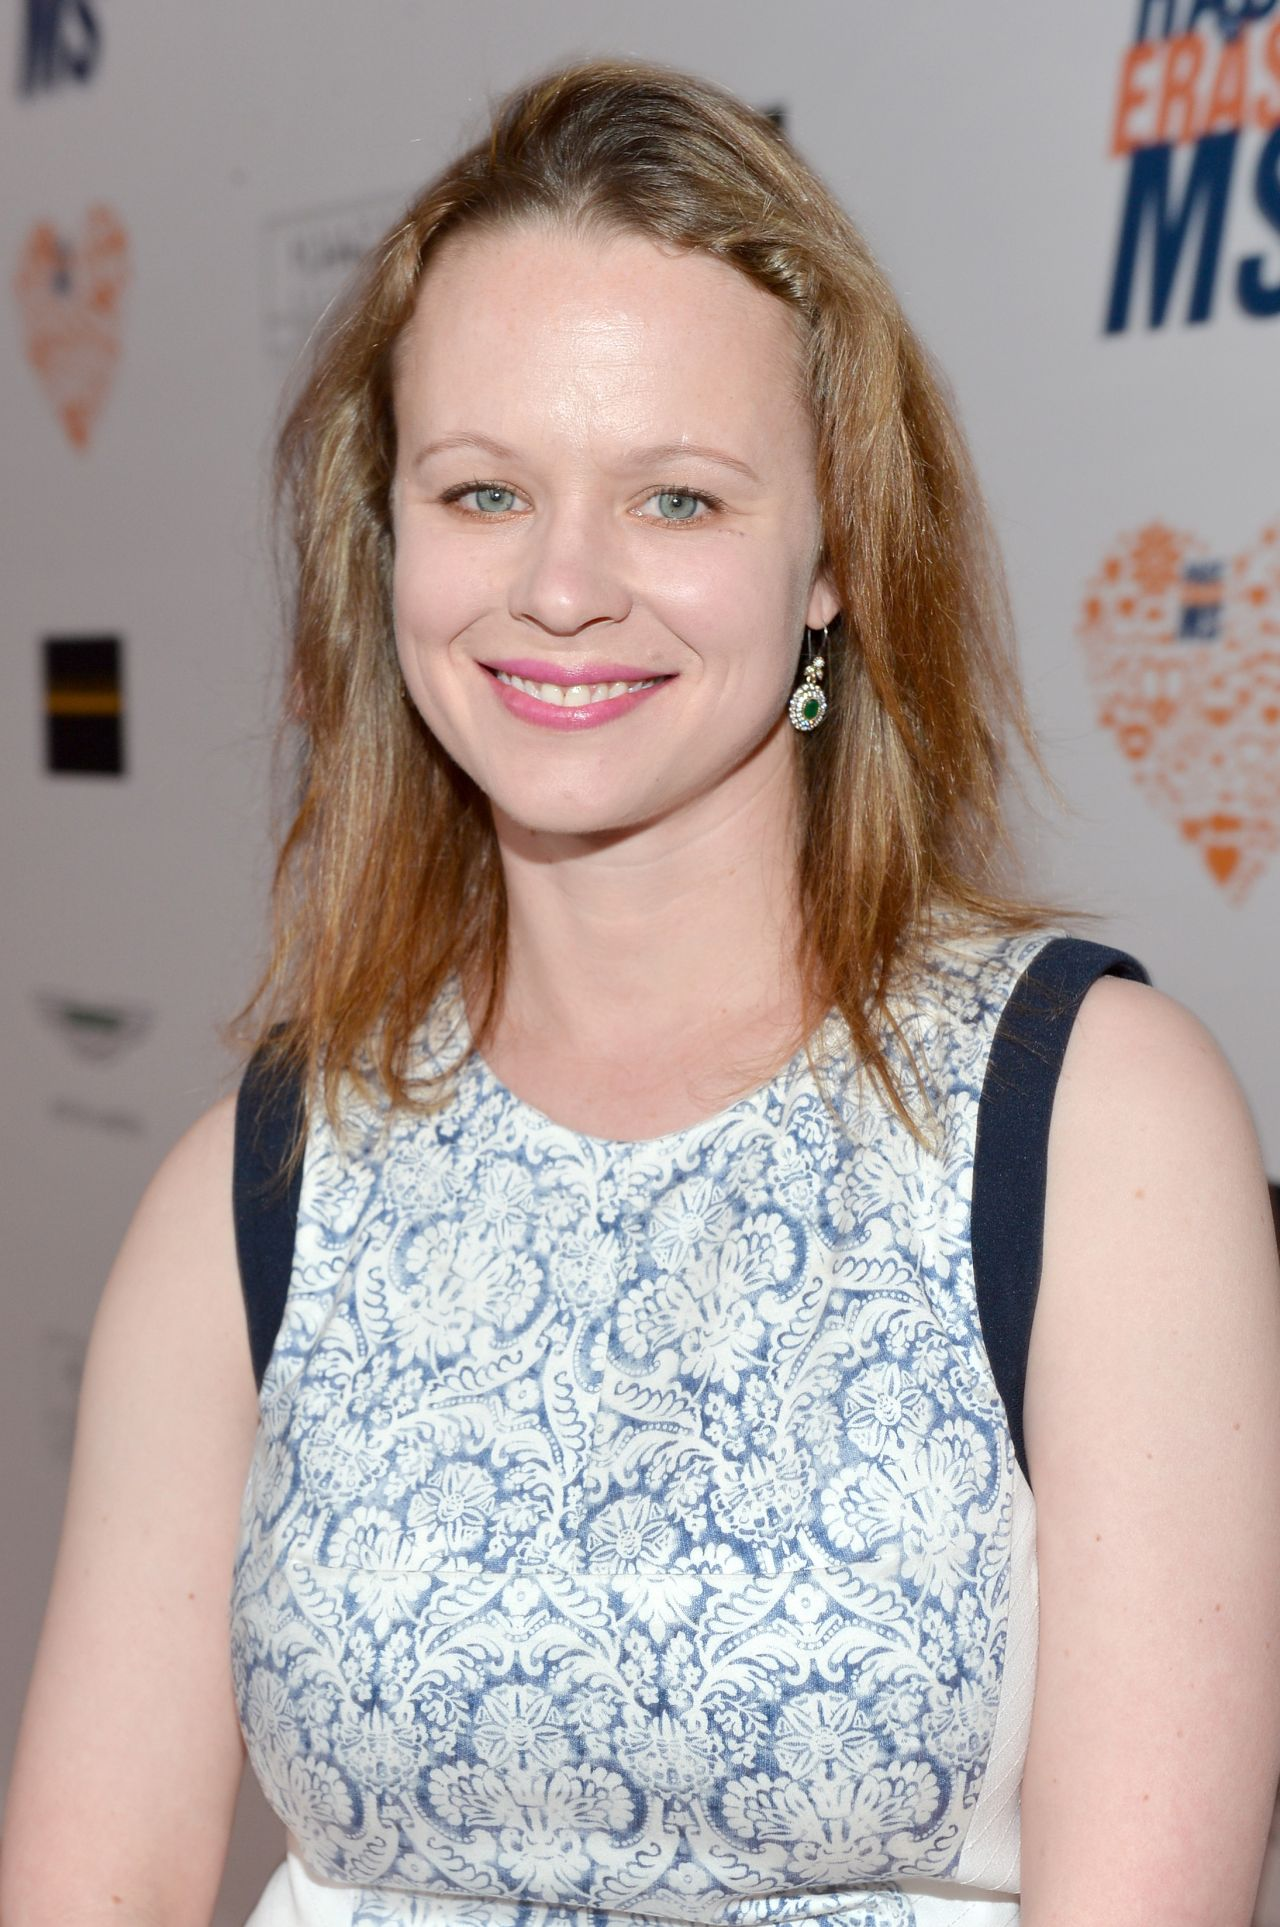 The 35-year old daughter of father Jack Birch and mother Carol Connors, 165 cm tall Thora Birch in 2017 photo